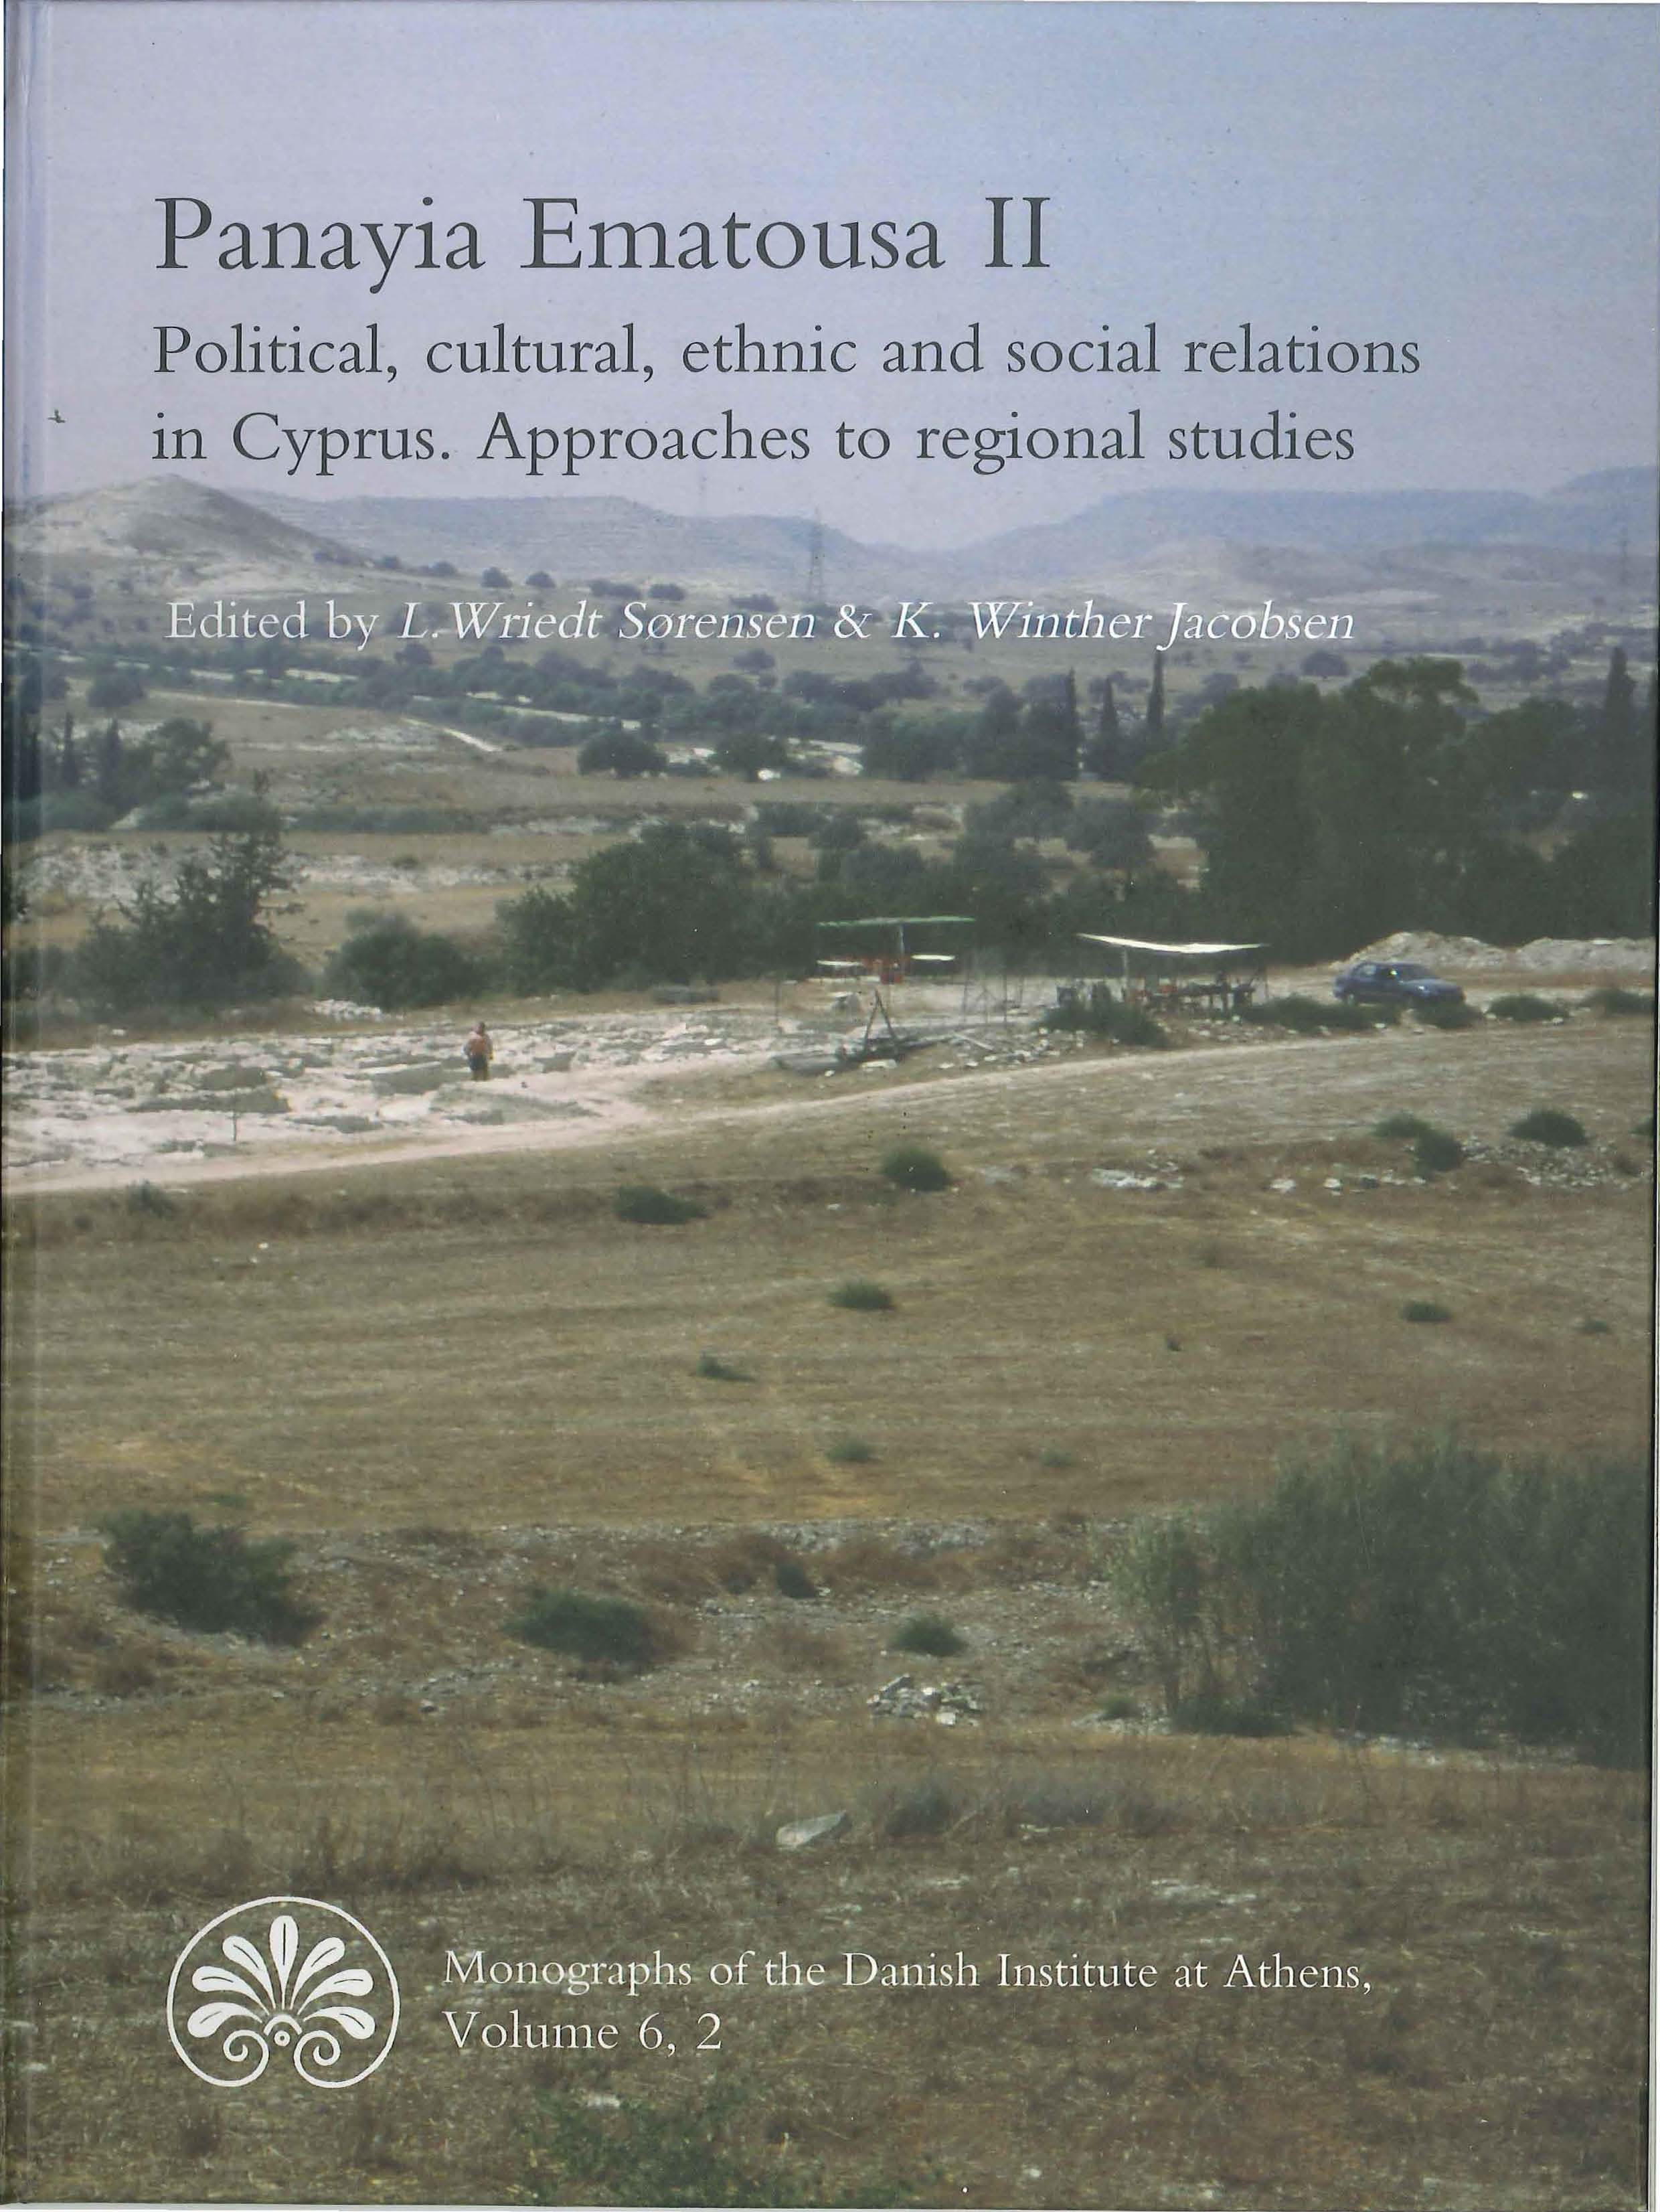 View Vol. 6 No. 2 (2006): Panayia Ematousa II: Political, cultural, ethnic and social relations in Cyprus. Approaches to regional studies